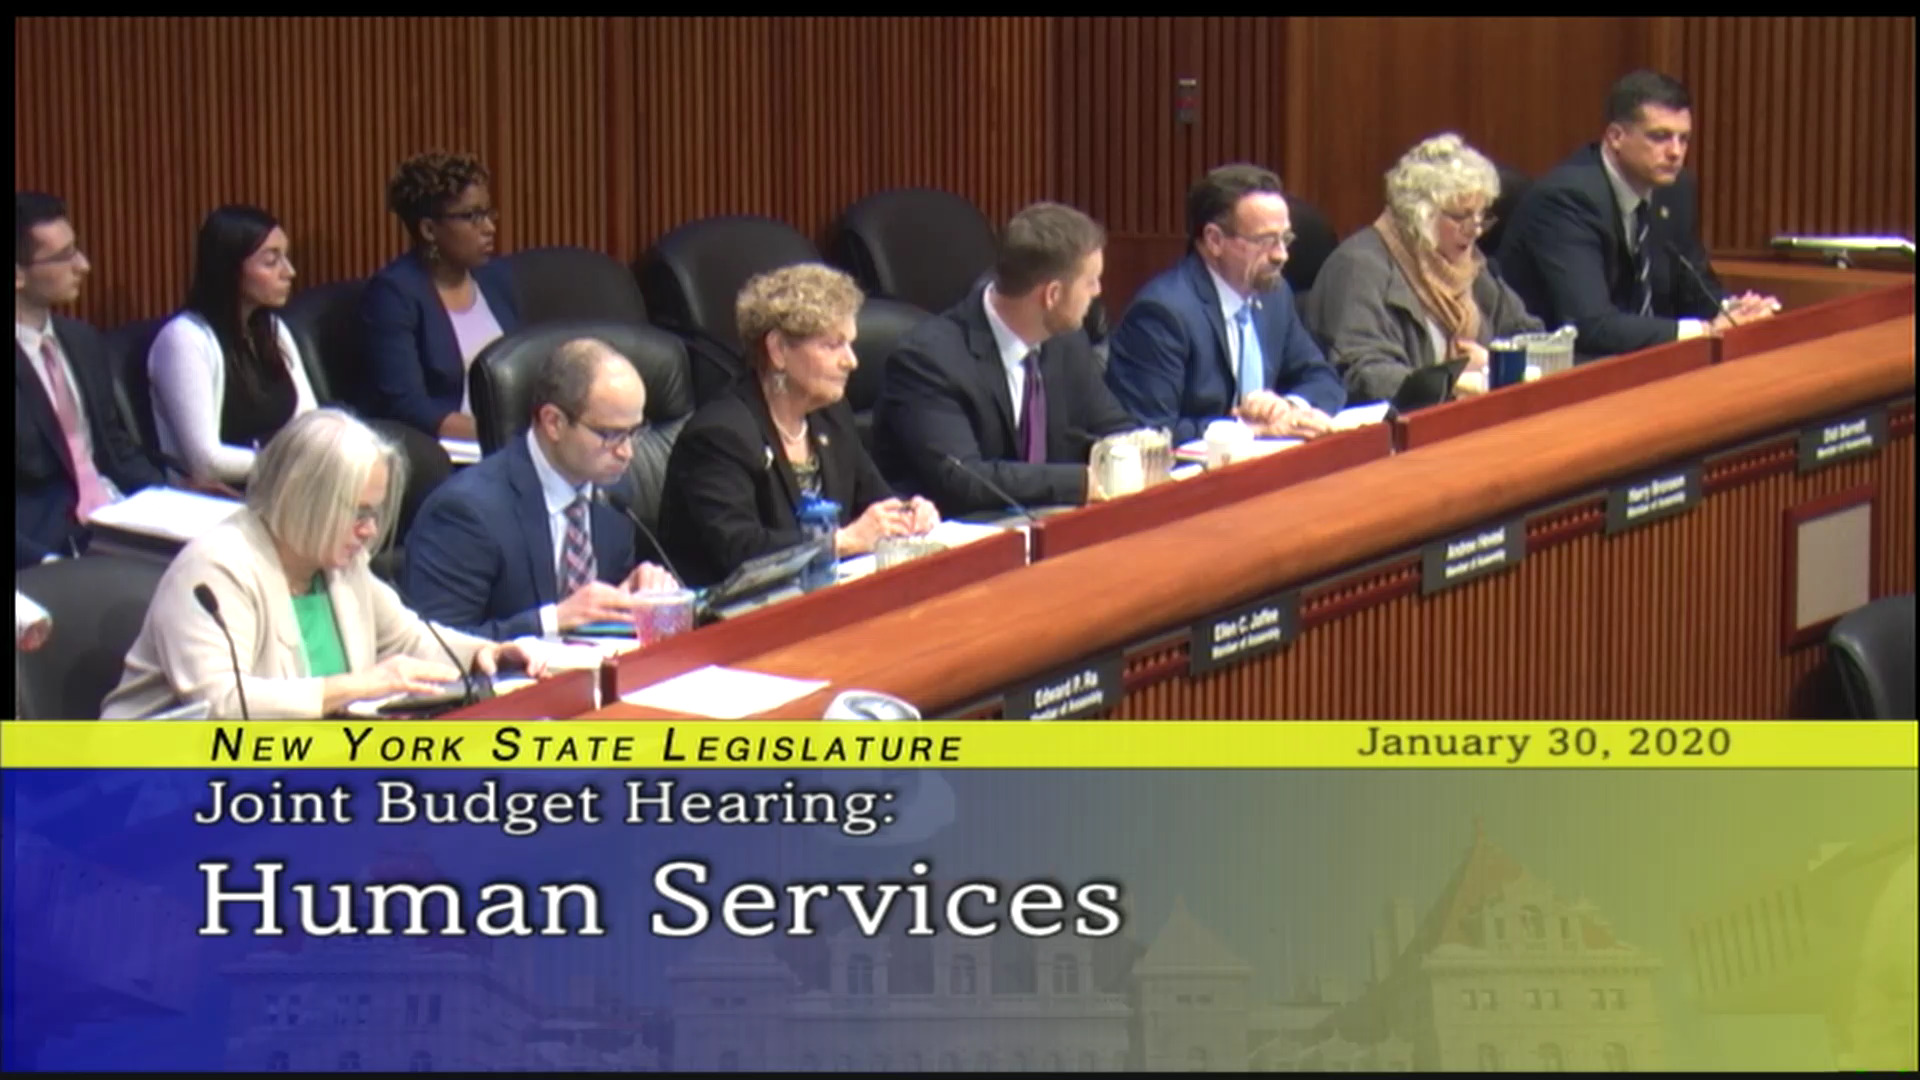 2020 Joint Budget Hearing on Social Services